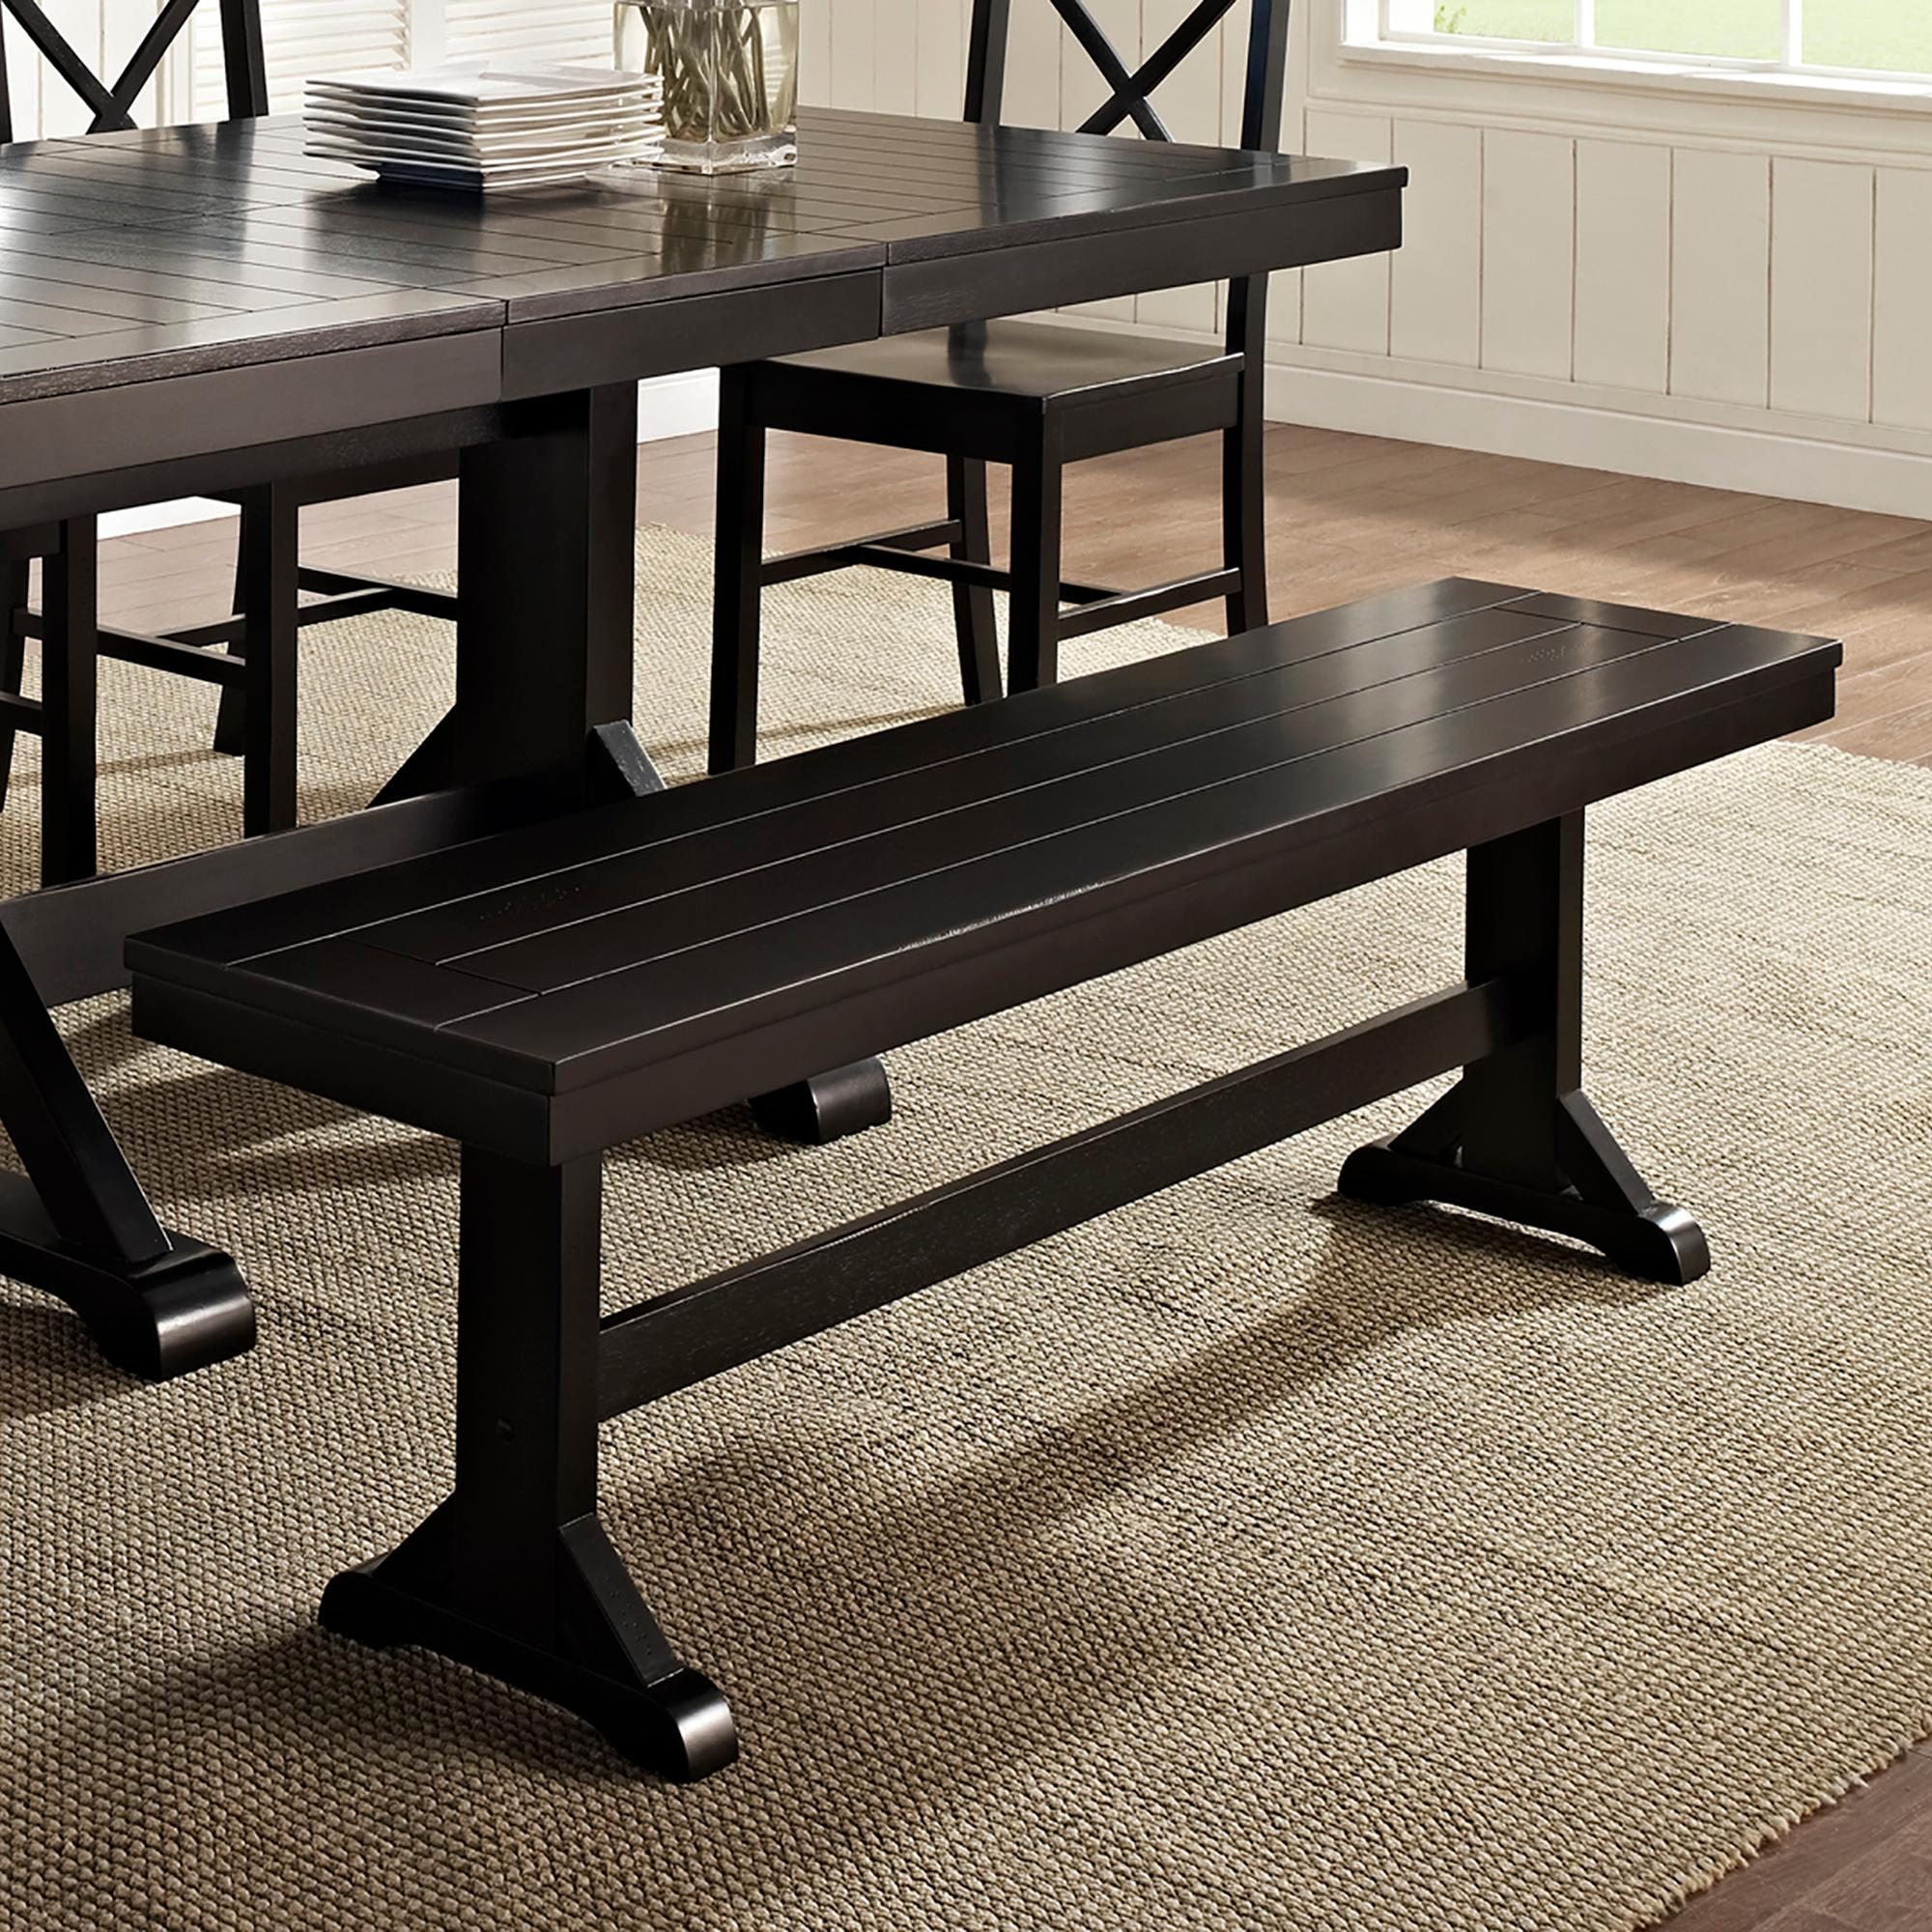 We furniture solid wood dark oak dining bench for Dark wood furniture